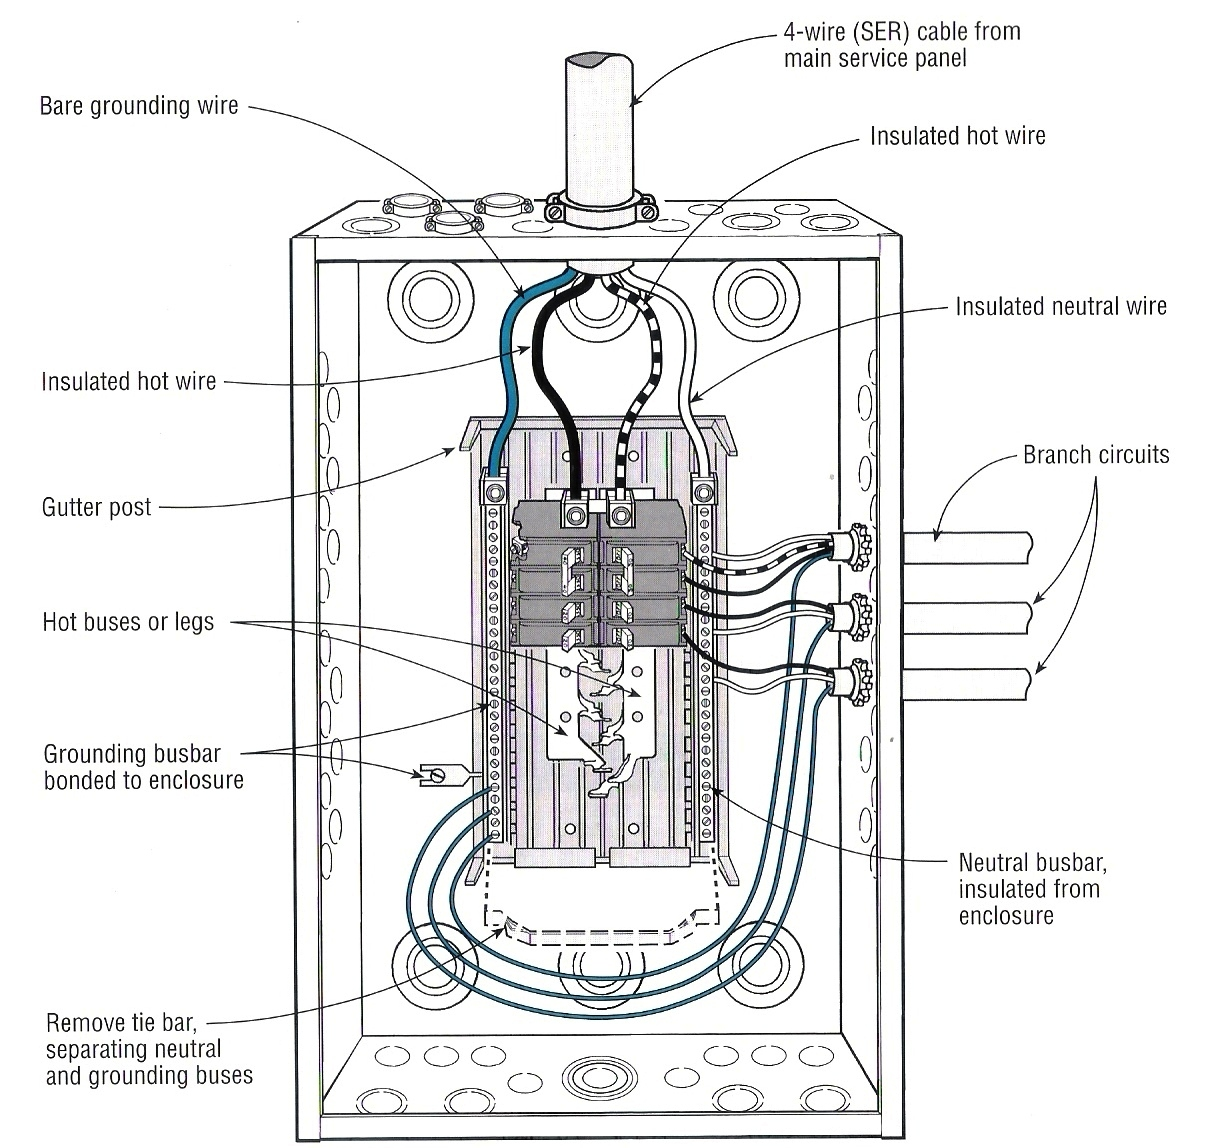 electric service panel wiring diagram